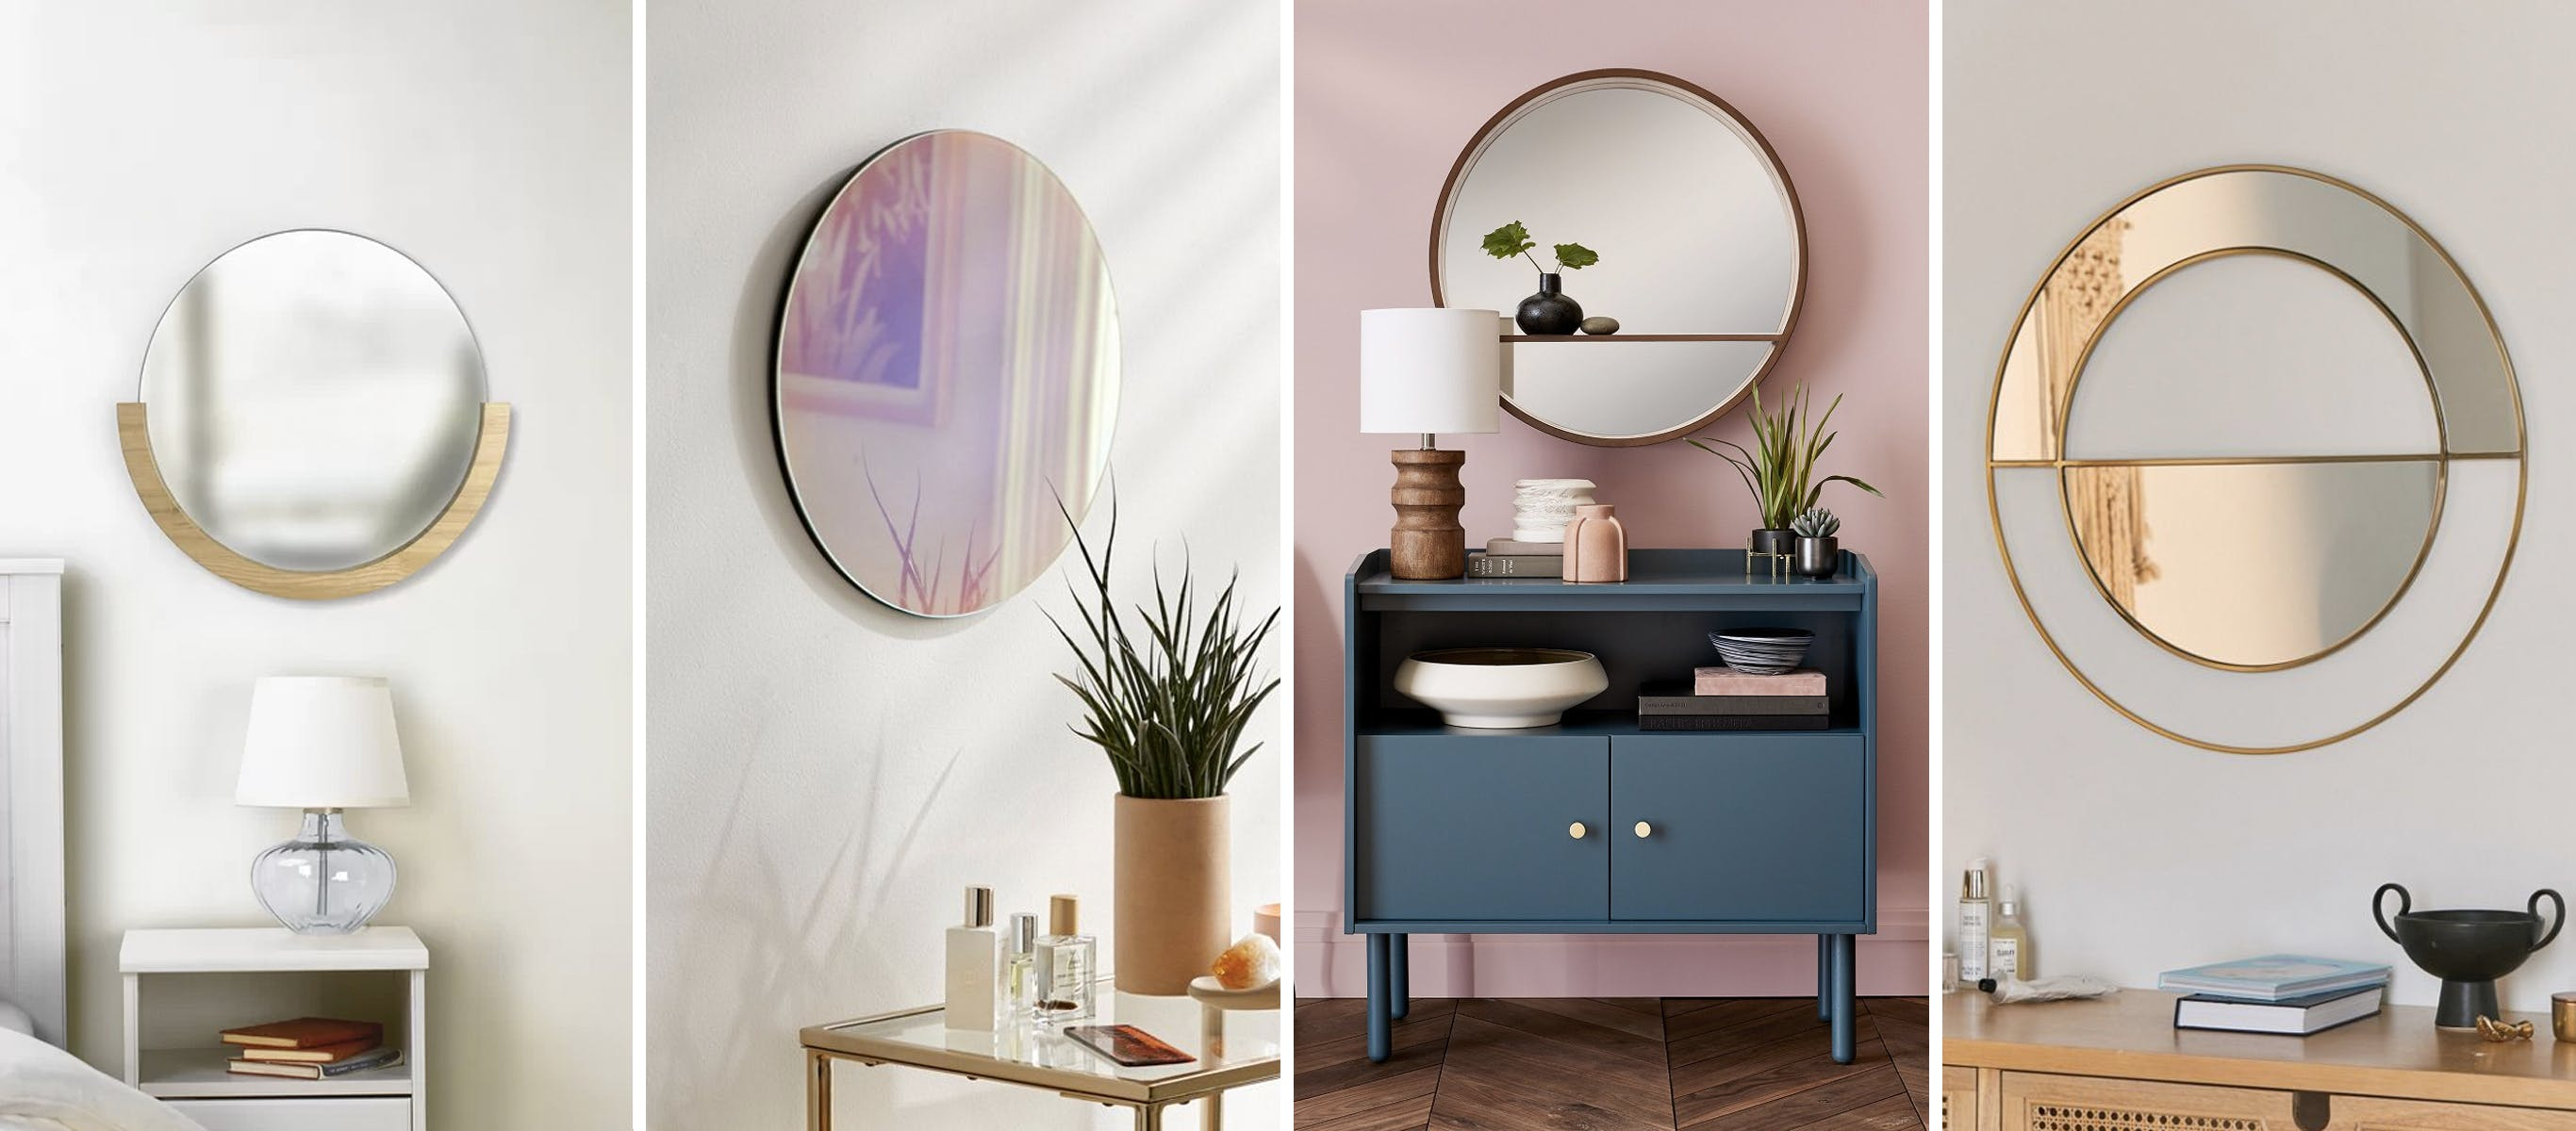 Round Mirrors For Wall Decor In The Home | Brit + Co regarding Rhein Accent Mirrors (Image 27 of 30)